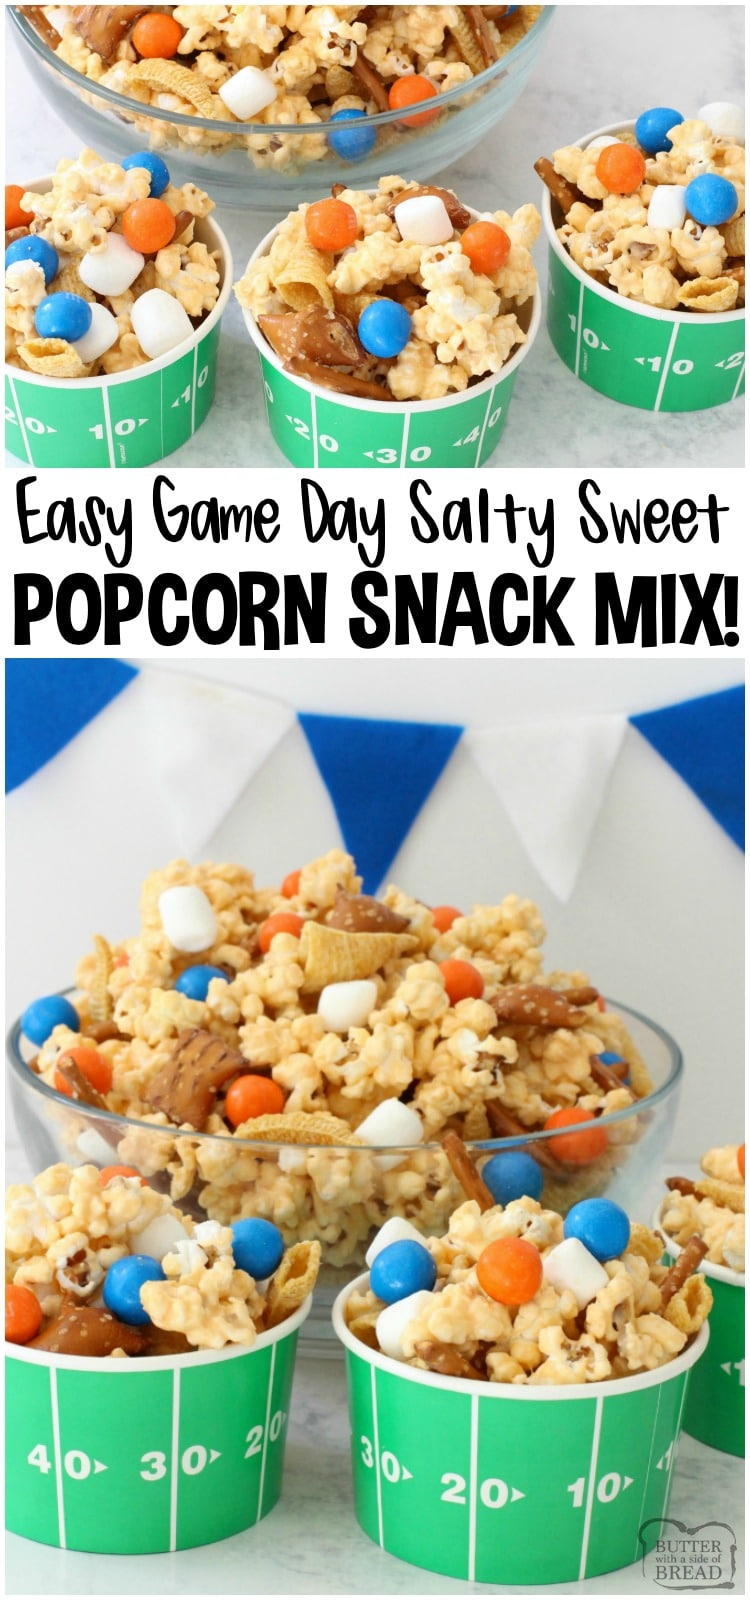 Easy Popcorn Snack Mix is sweet, salty, & perfect for excited sports fans! Customize candy colors to celebrate your team in this snack mix recipe! #snackmix #popcorn #candy #gameday #gamedayfood #superbowl #recipe from BUTTER WITH A SIDE OF BREAD